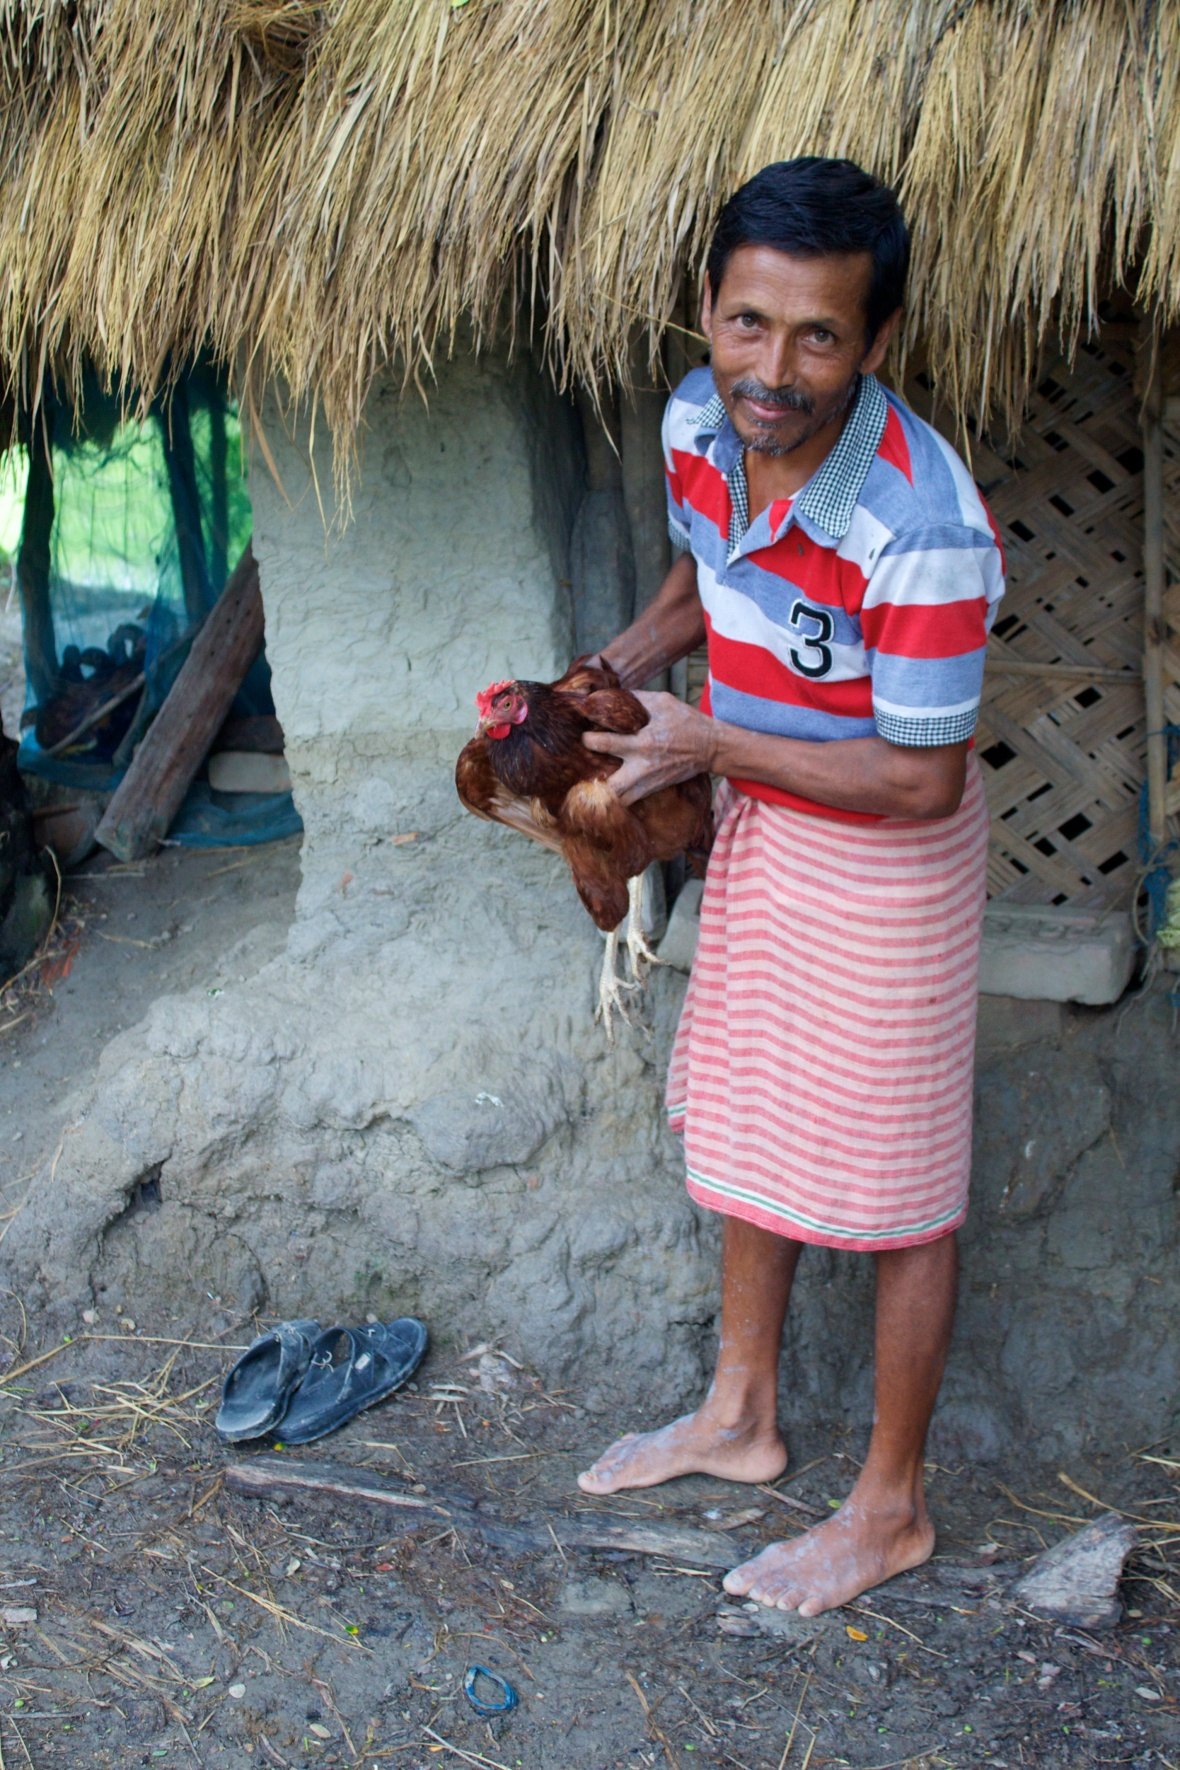 Chicken eggs are sold to supplement incomes in the Sundarbans © Nisha D'Souza